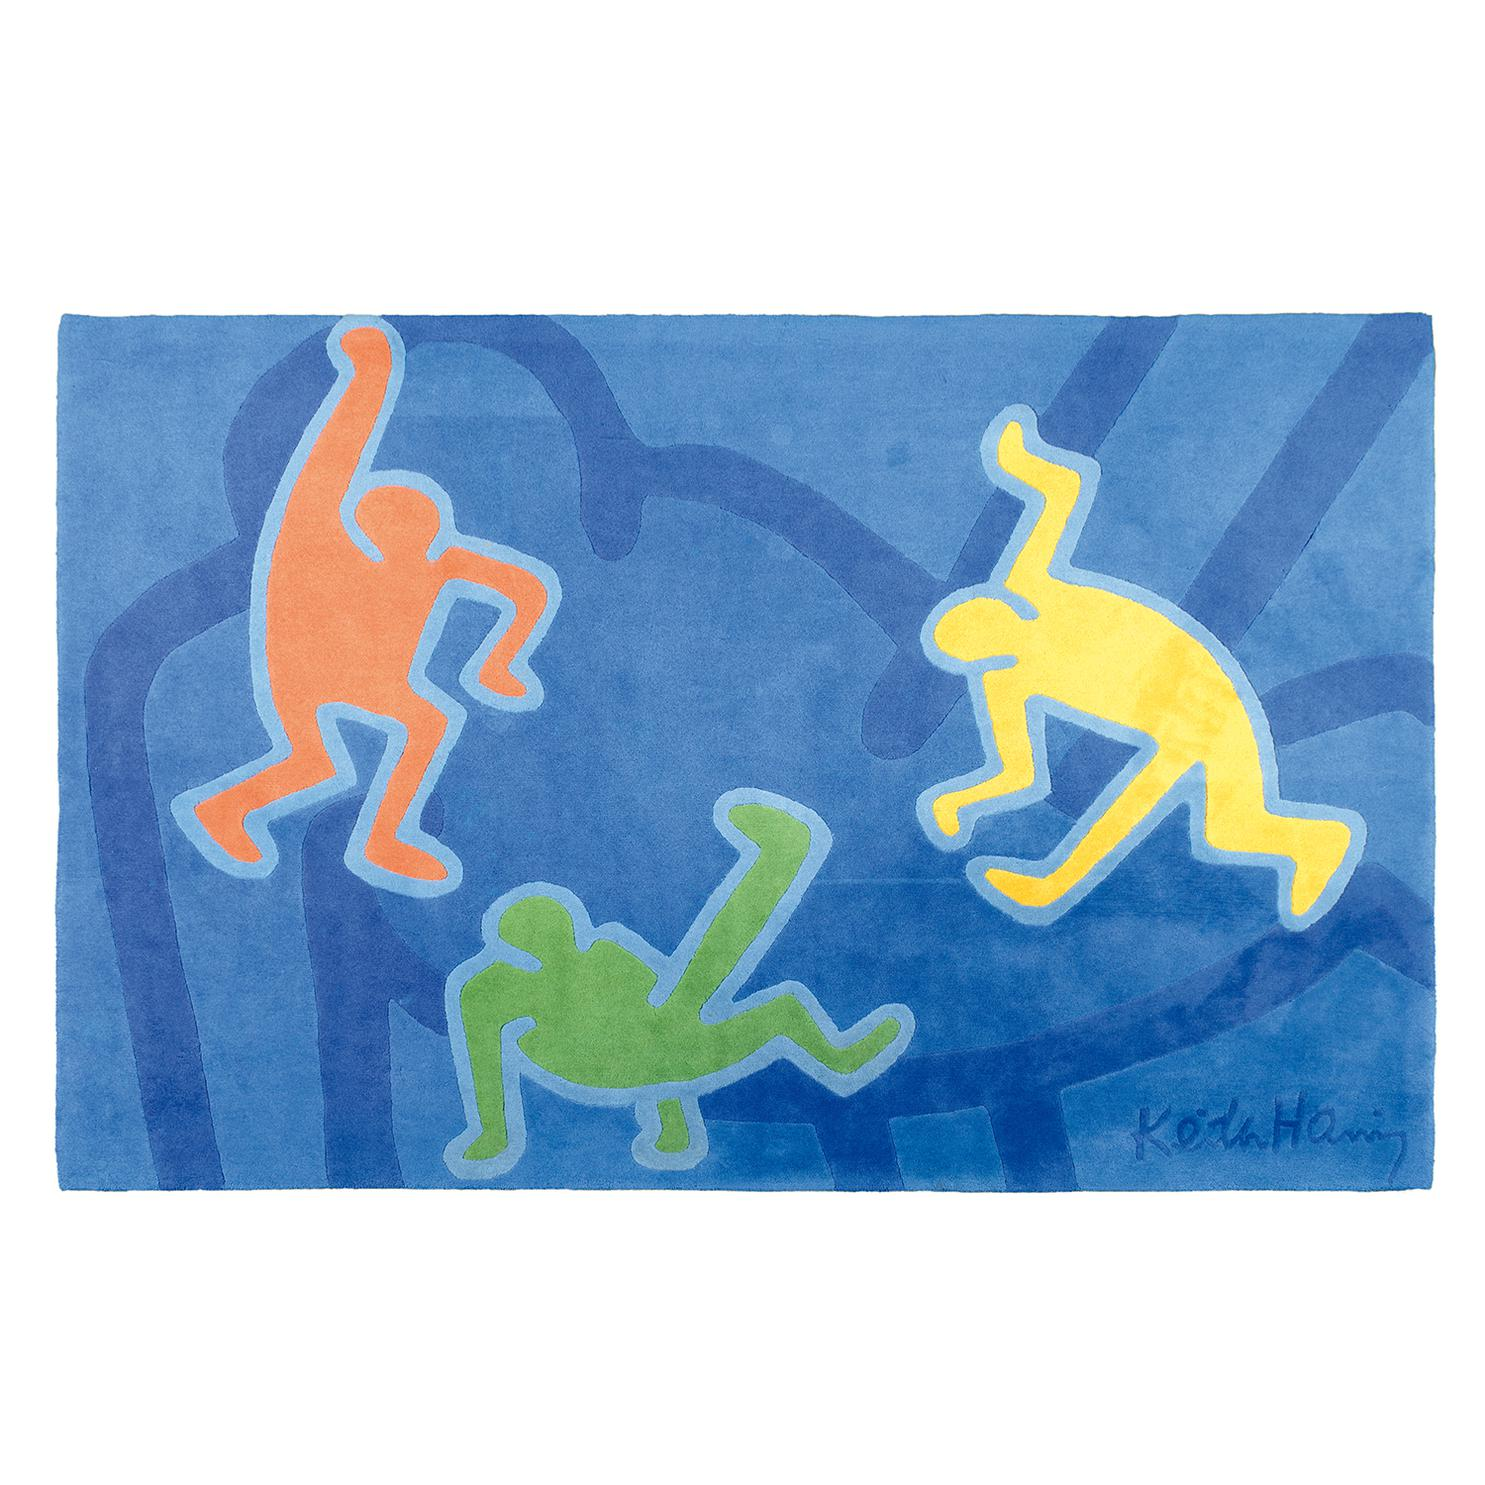 Keith Haring-Breakdance-1987